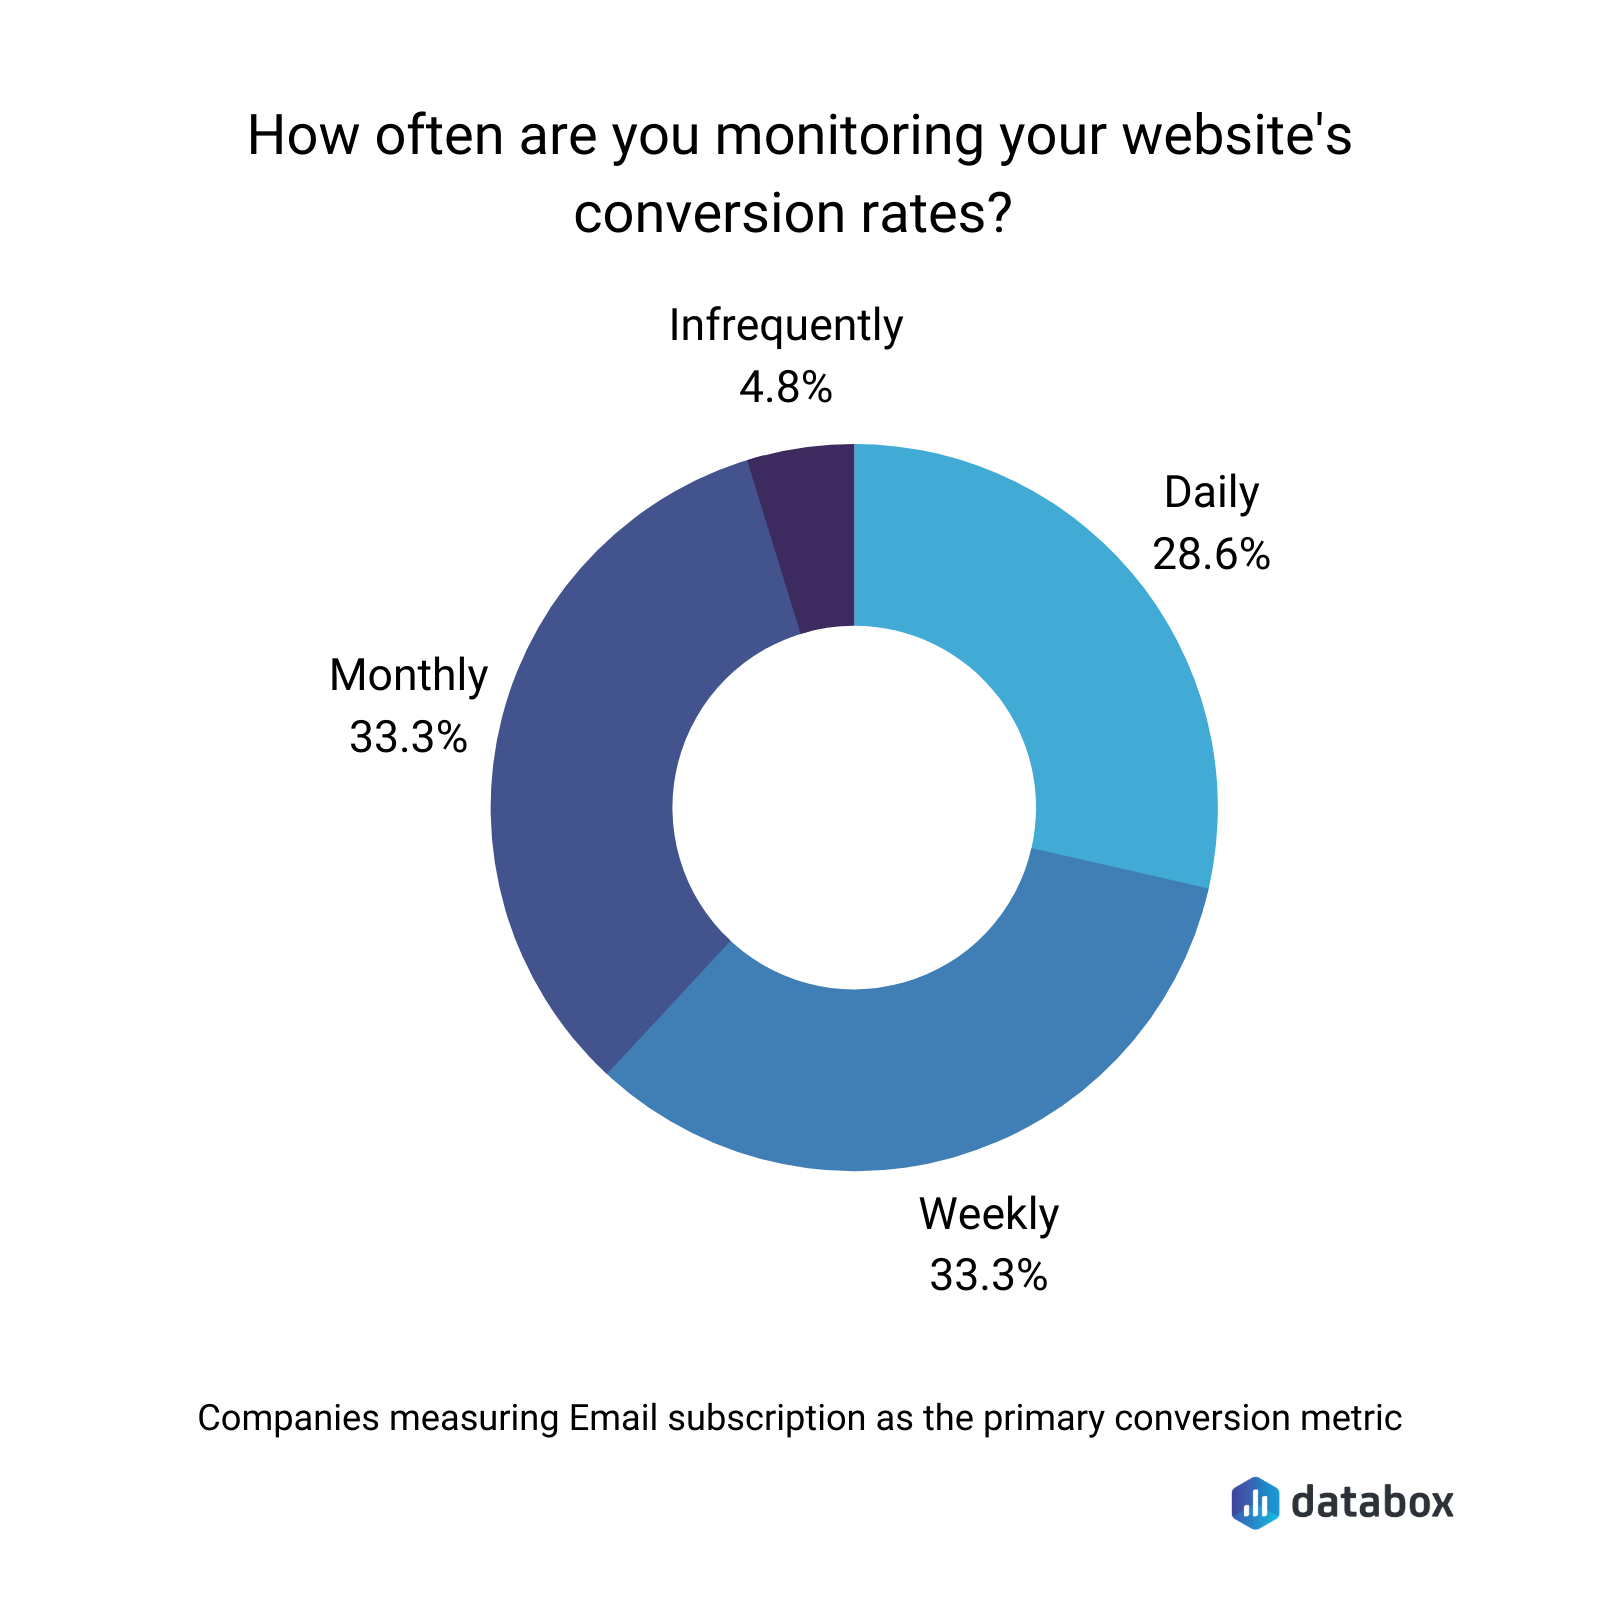 Databox survey results showing the frequency of monitoring website conversion rates